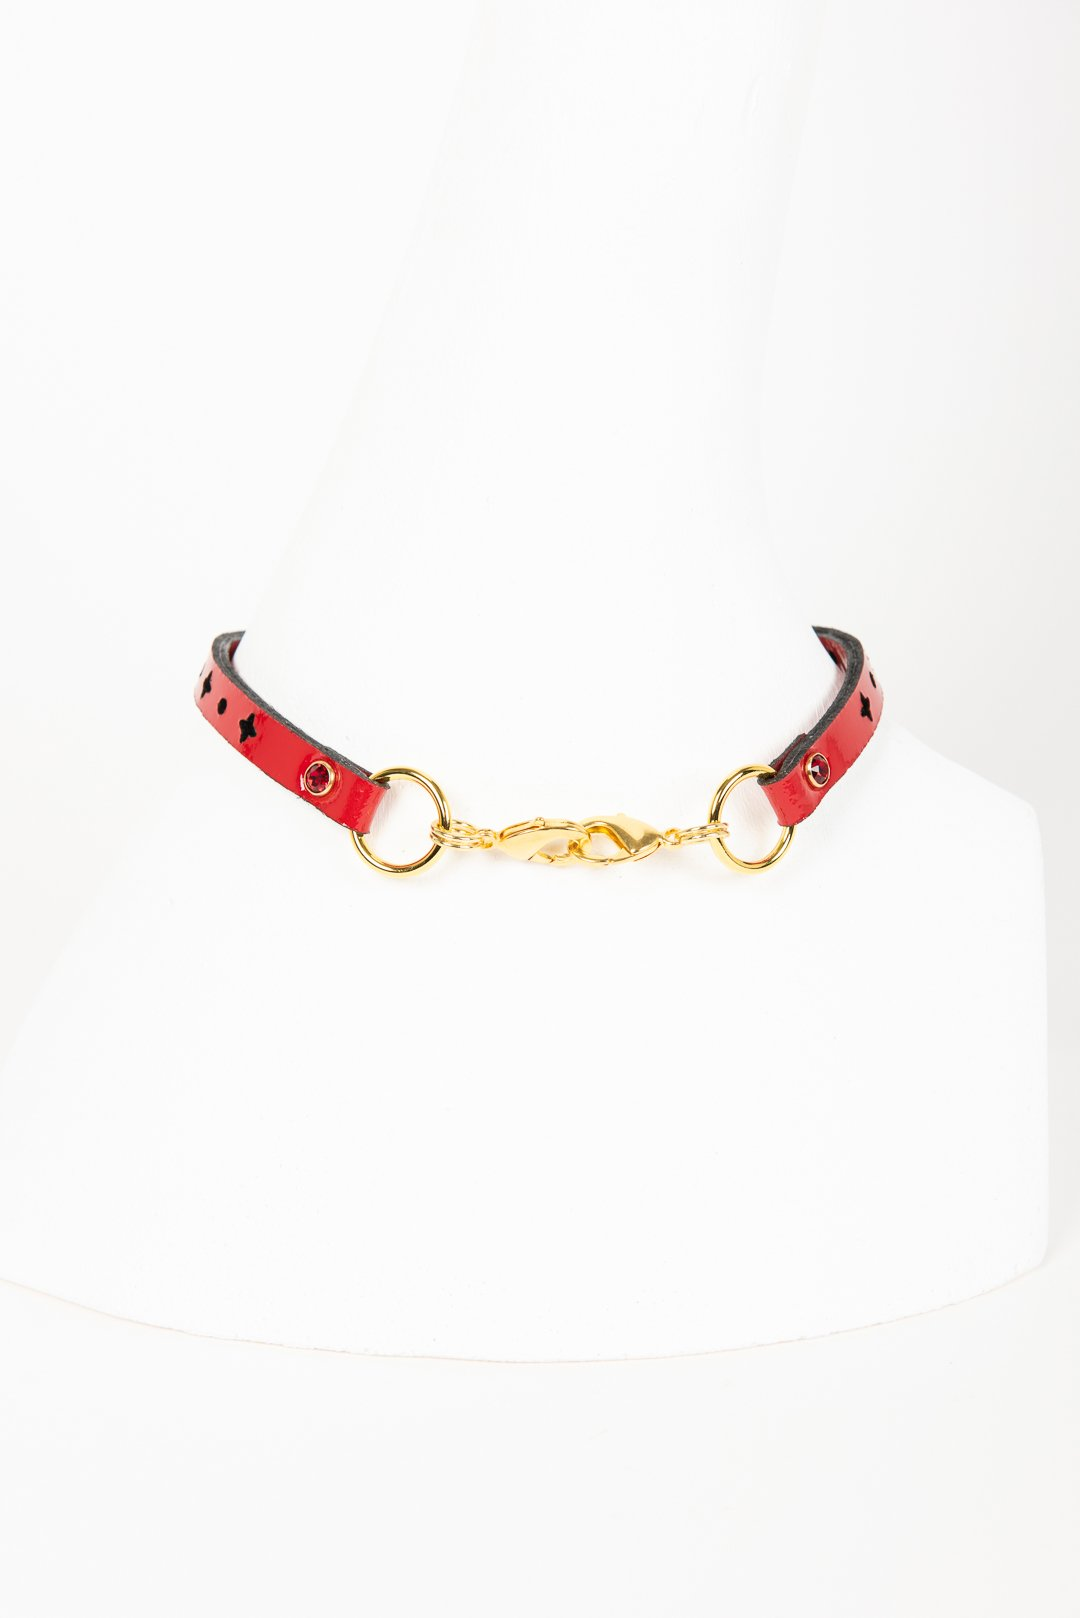 Luxury Patent Leather Roasary Choker with Crystal Rivets Buy Online at Fraulein Kink